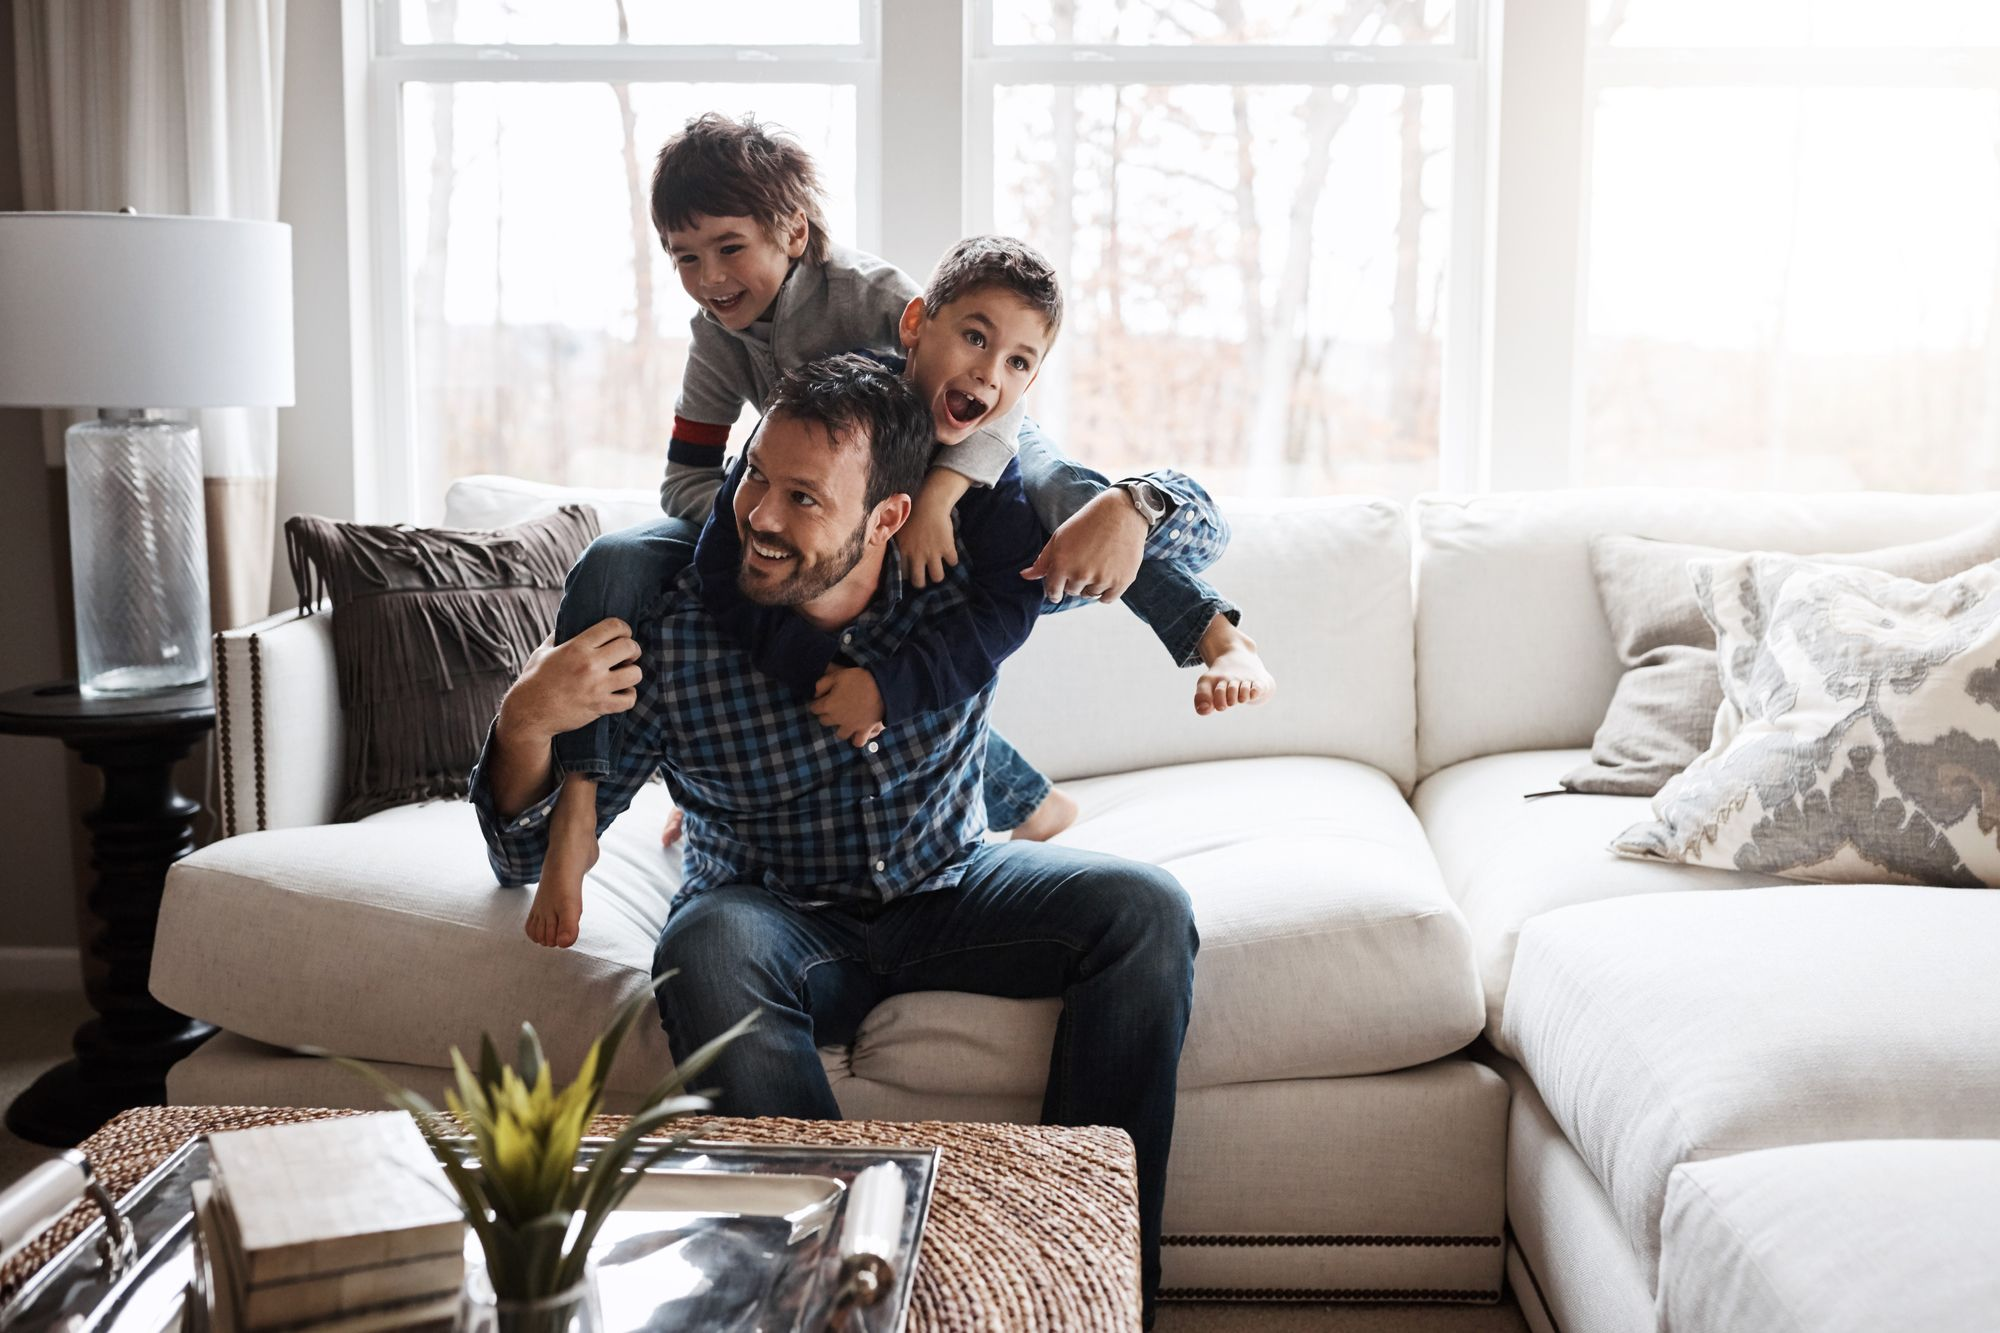 Celebrate dad with some quality bonding time on Father's Day Photography: gradyreese via Getty Images